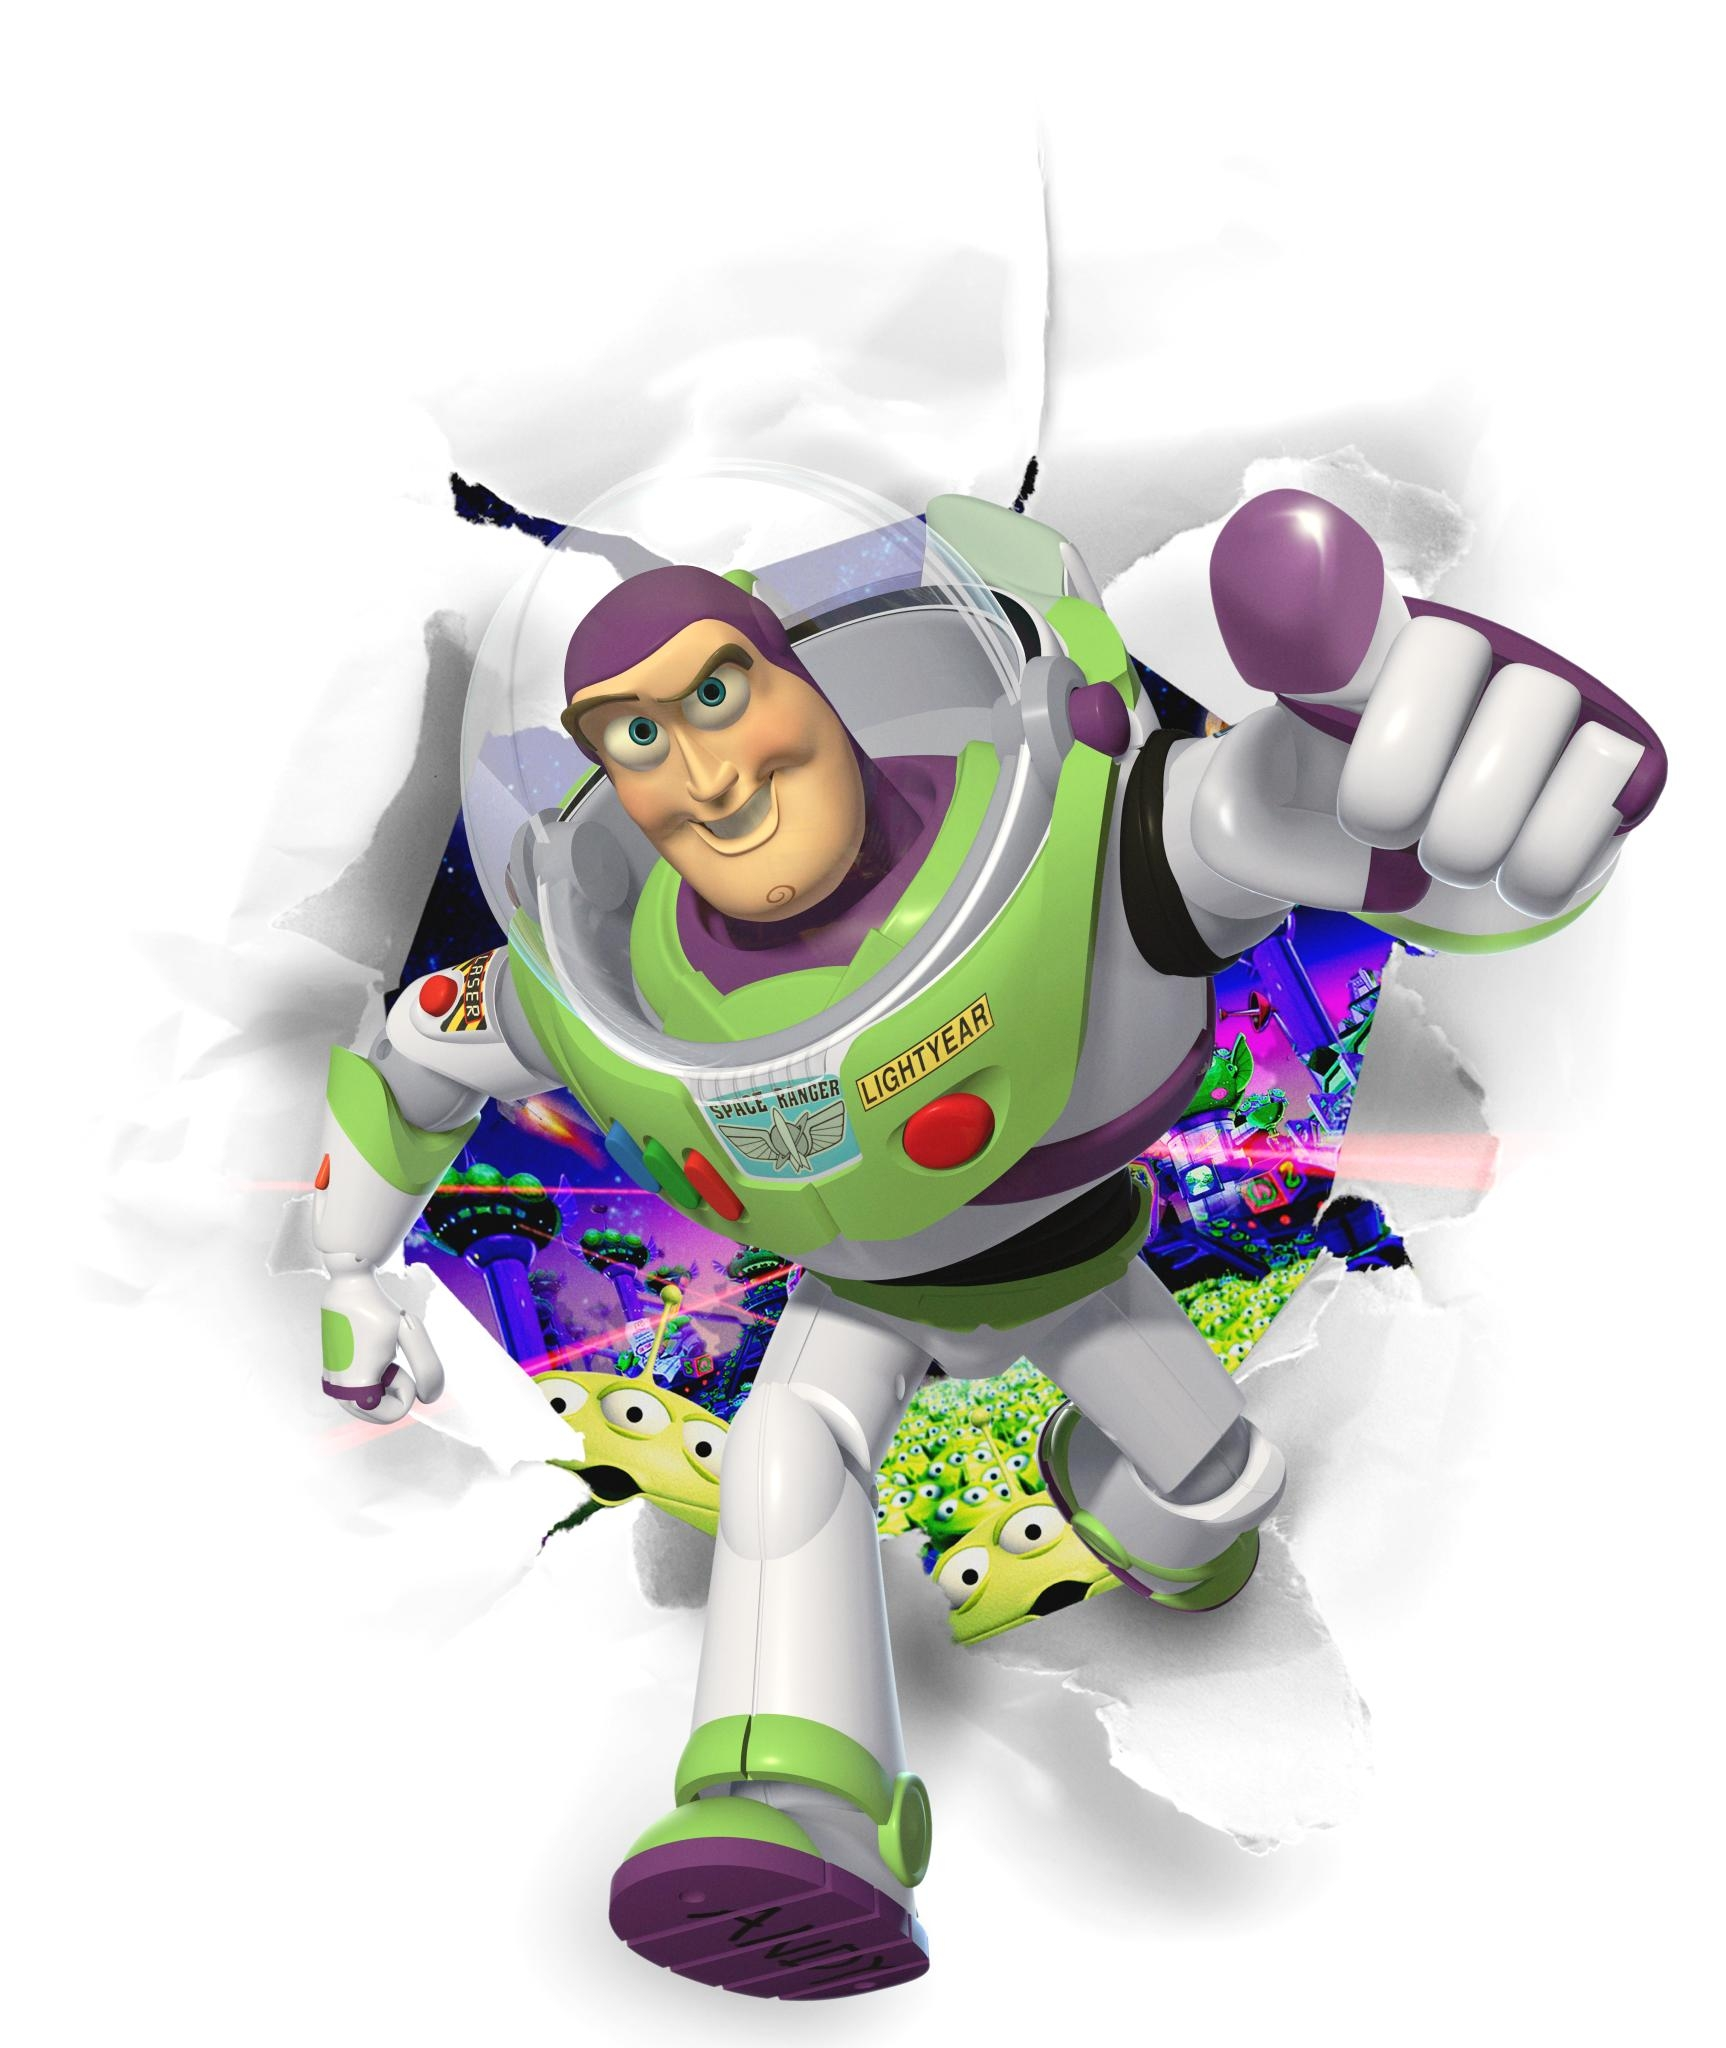 Buzz Lightyear Images For Cakes